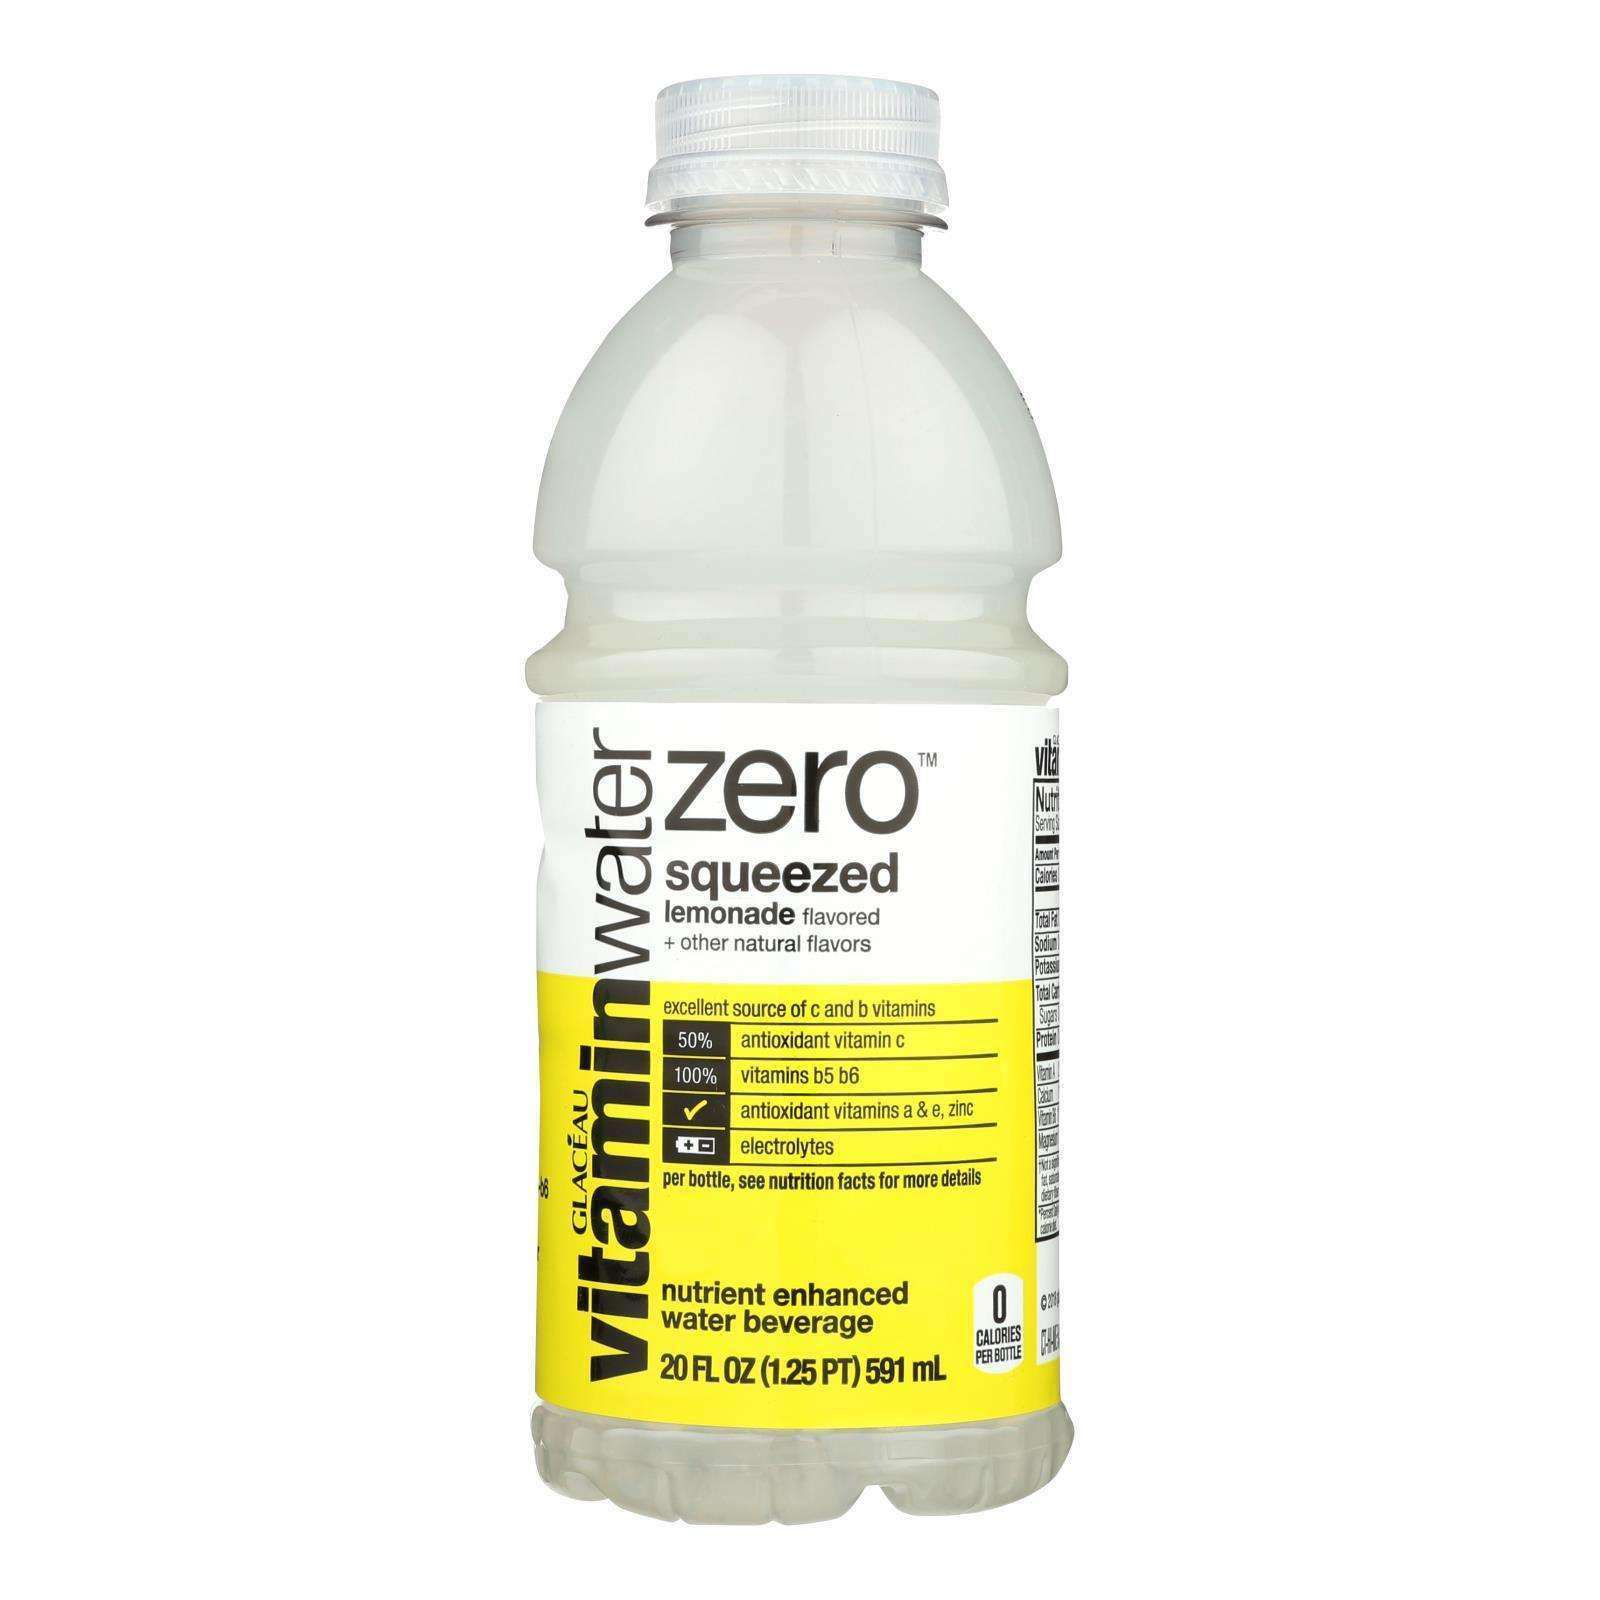 Glaceau Vitamin Water Zero, Squeeze Lemonade - Case Of 12 - 20 Fz - BeeGreen